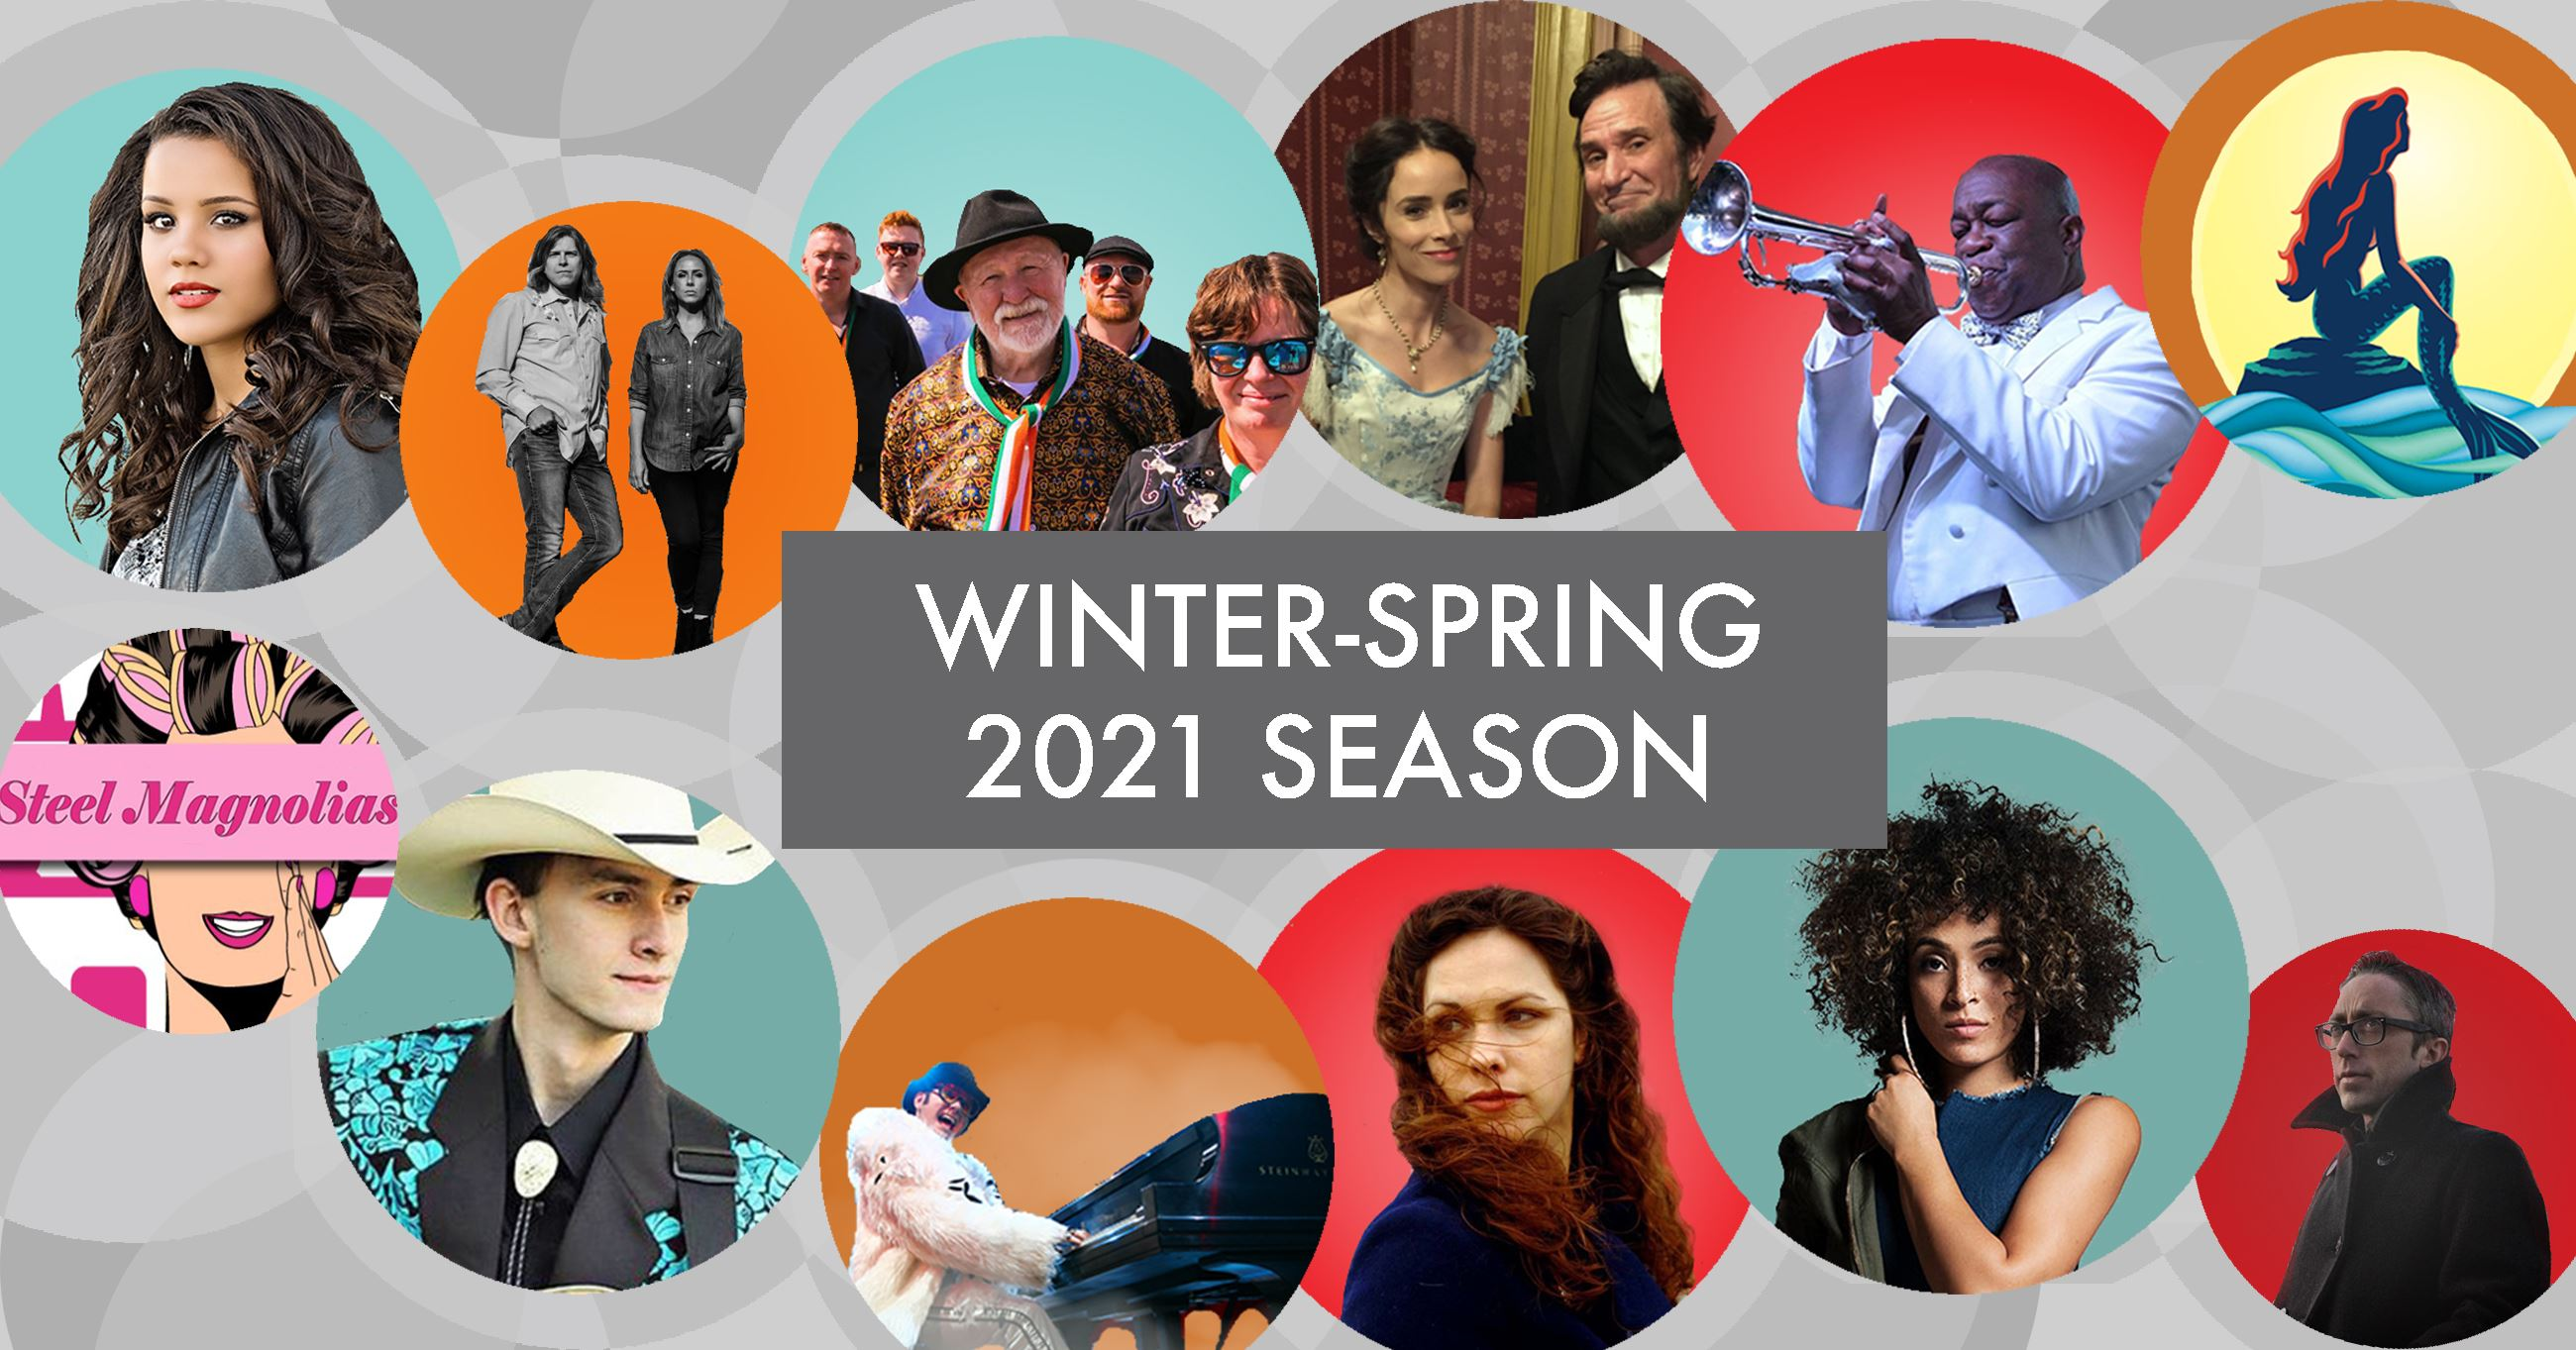 Winter-Spring 2020-2021 Season